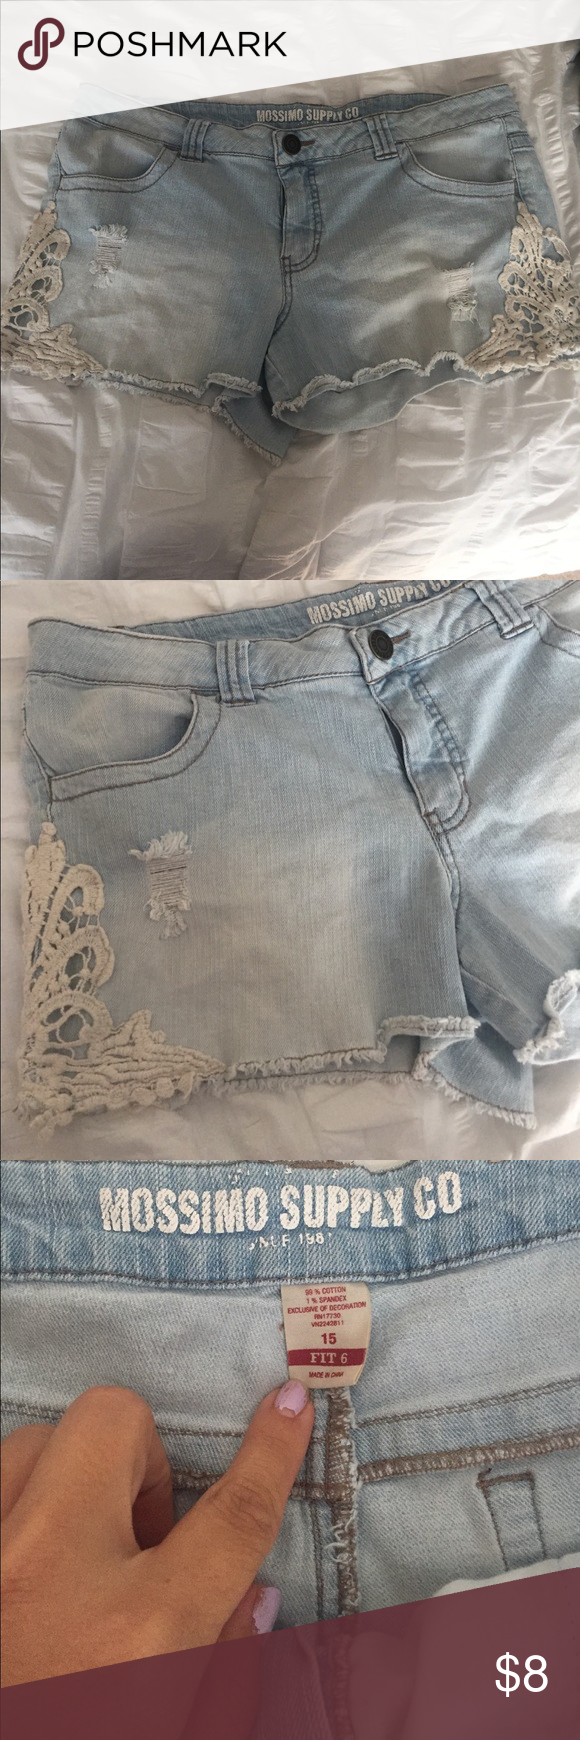 Mossimo distressed lace denim shorts Very short. Super cute! Size 15 Mossimo Supply Co Shorts